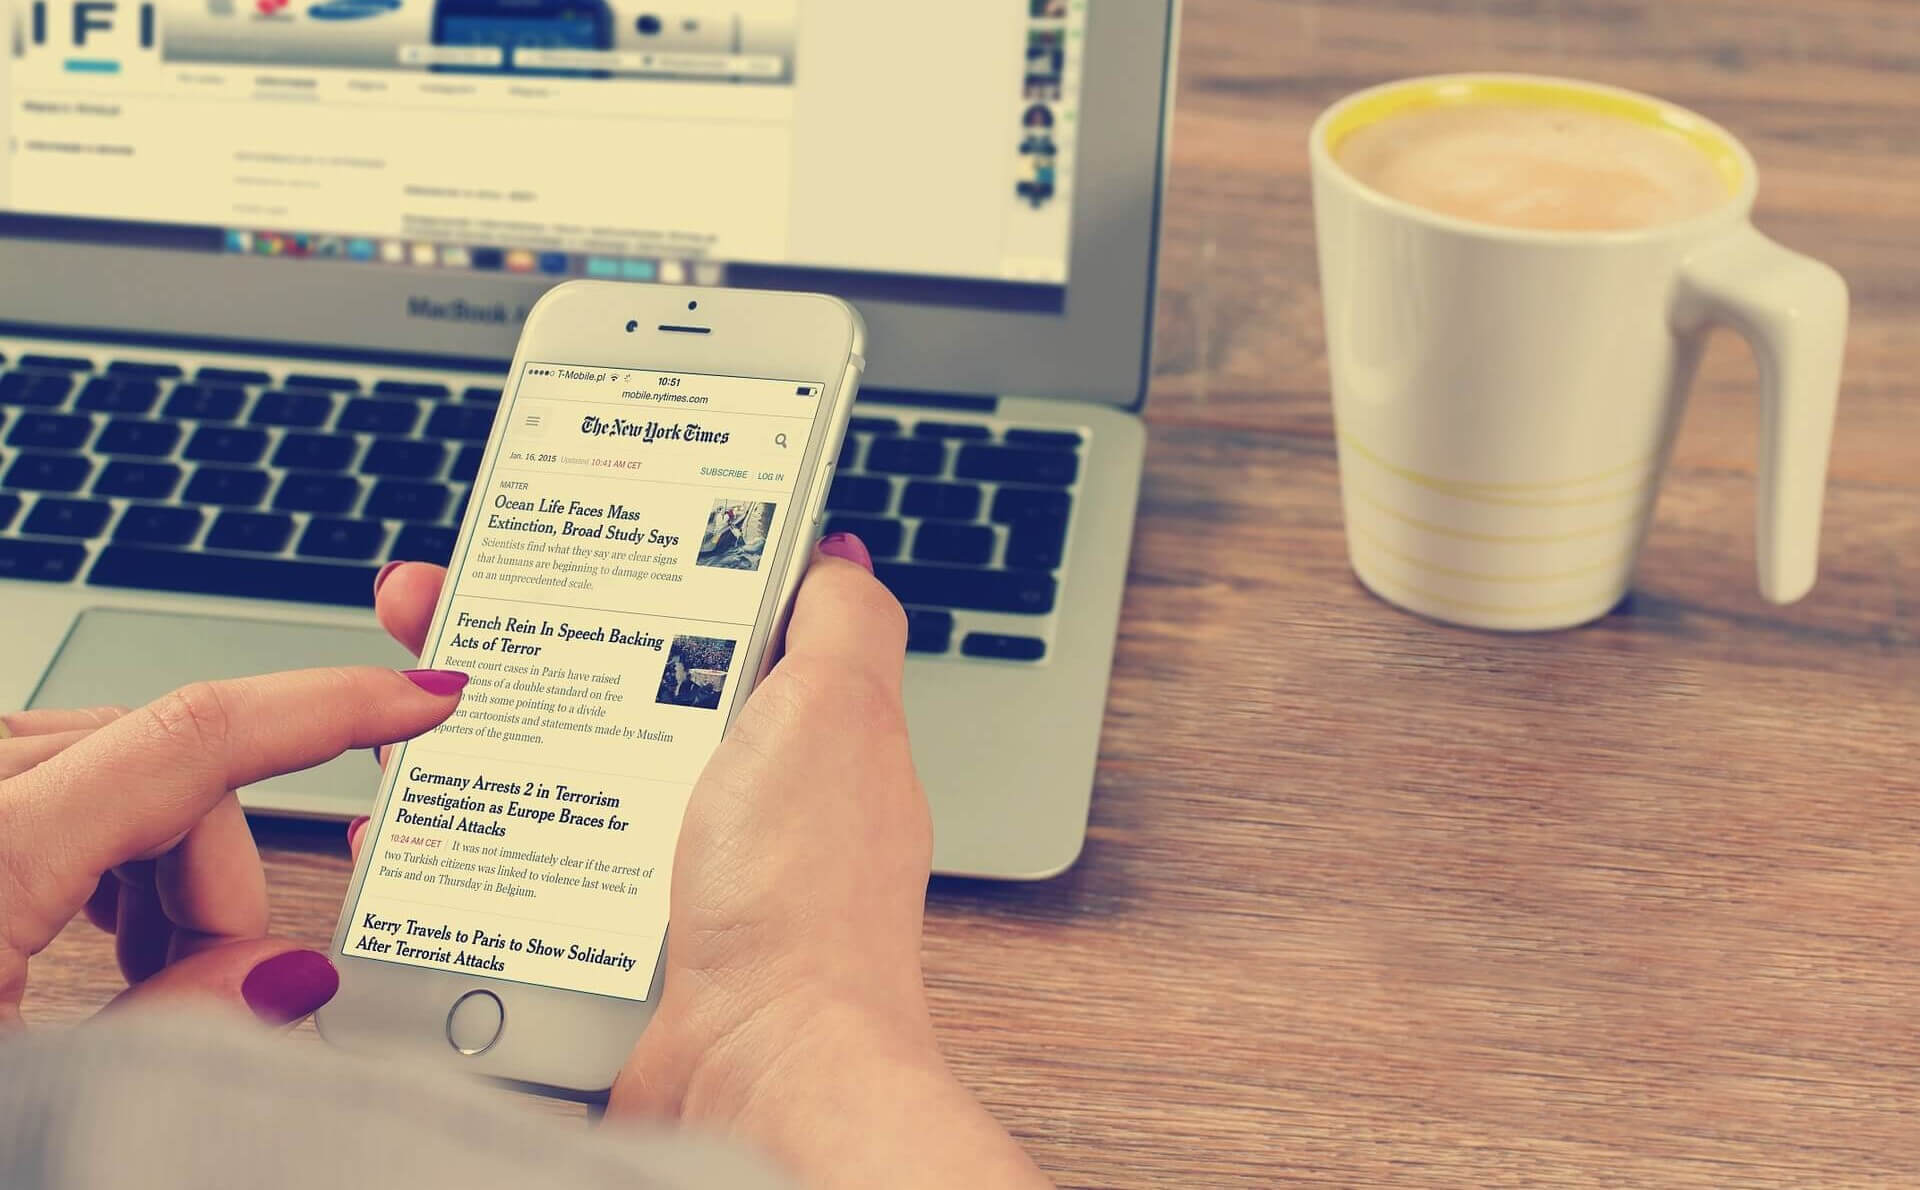 PressPad mobile apps technology attract magazine readers